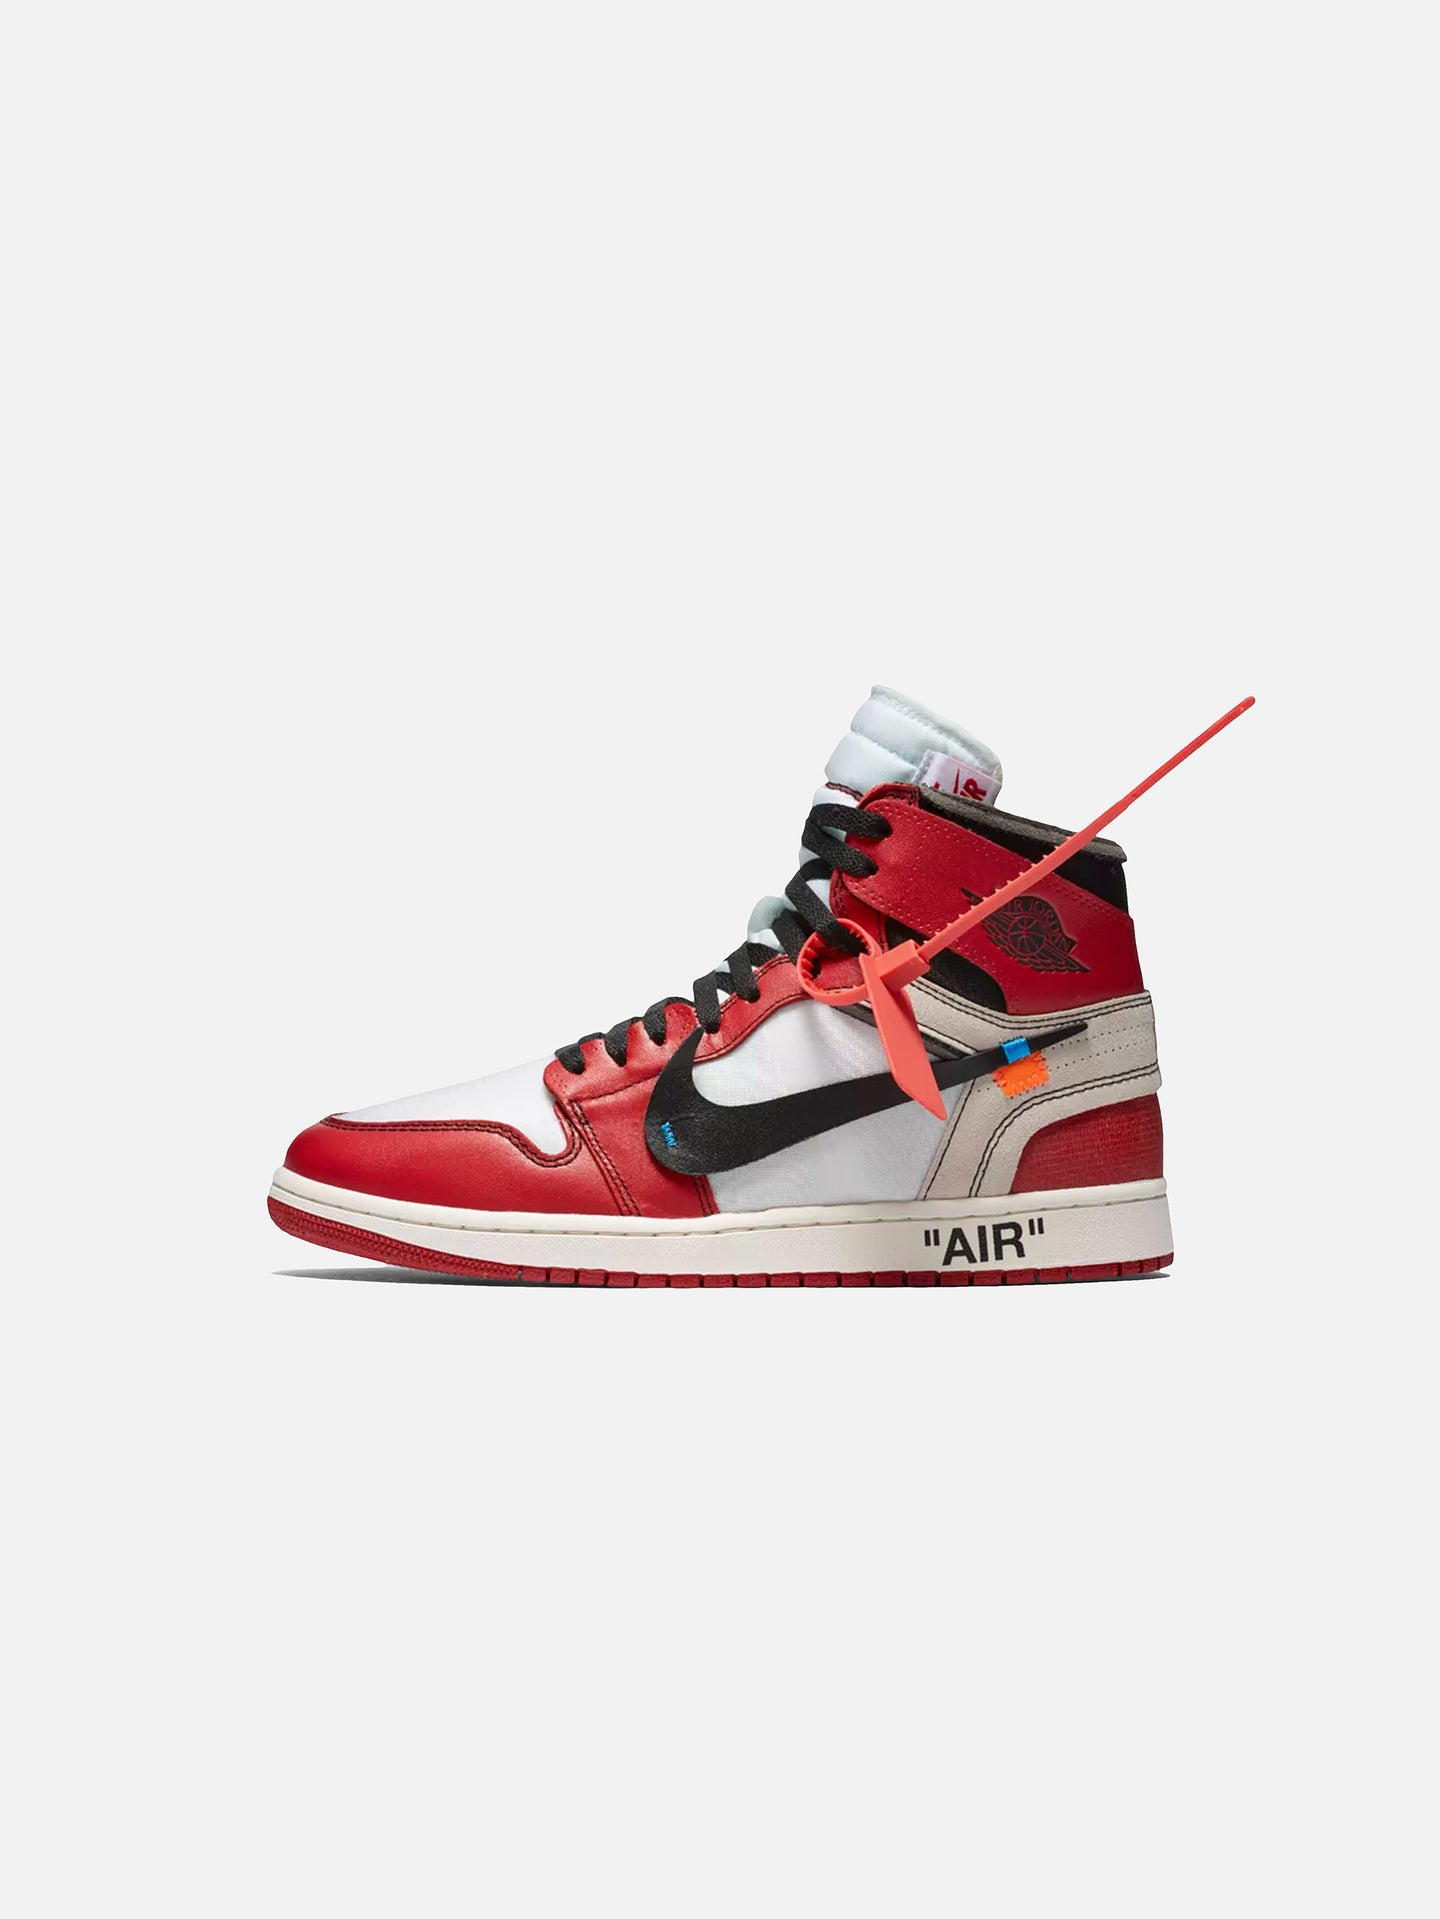 outlet store 55576 c53b4 x OFF-WHITE™ AIR JORDAN 1 RETRO OG CHICAGO. NIKE